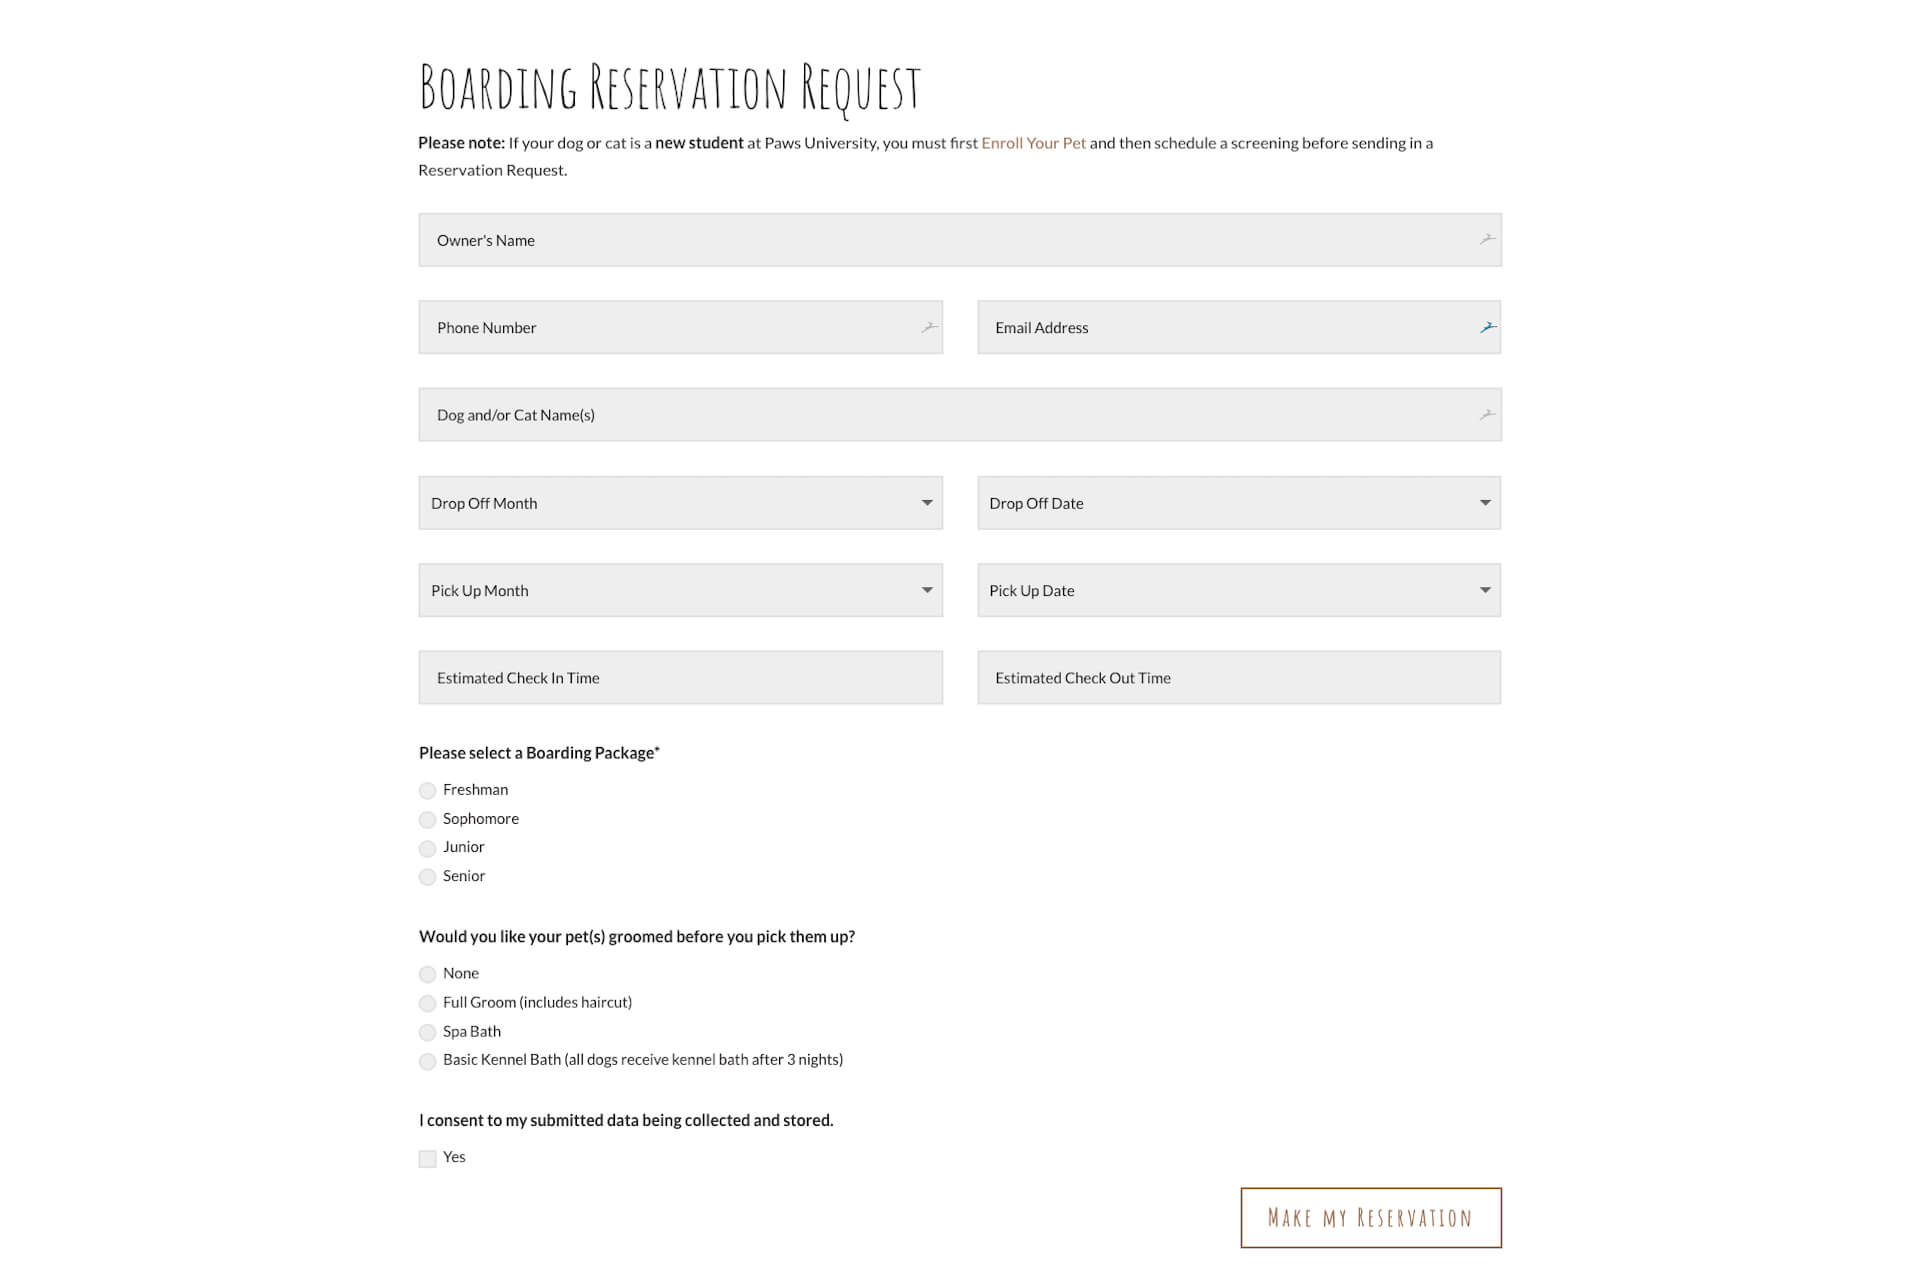 Paws University — Custom Online Reservation Form